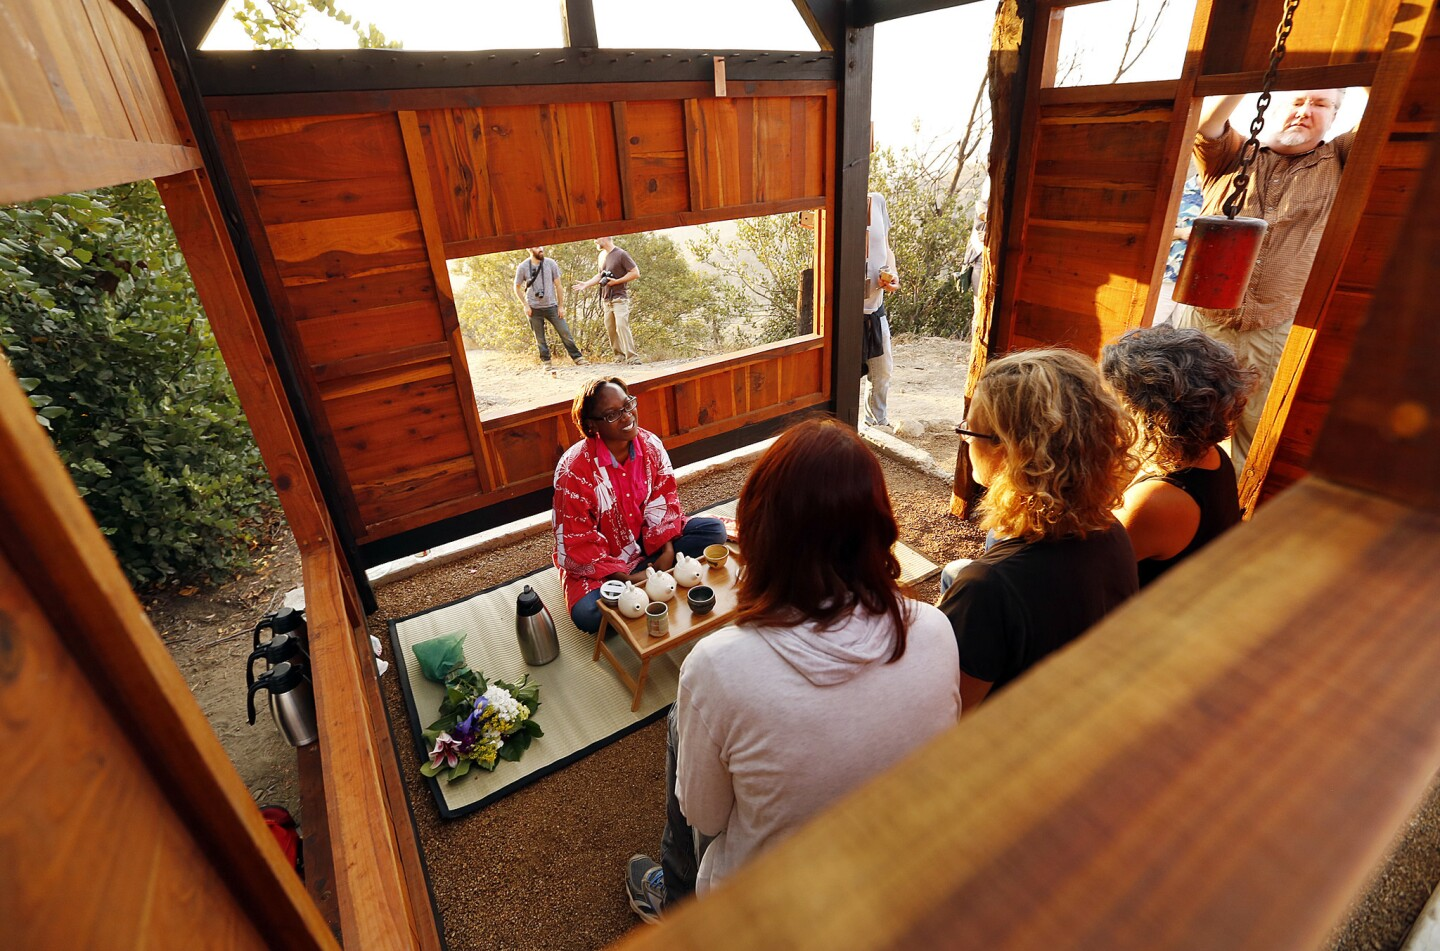 Williams, left, pours tea for Stacey Abarbanel, Karin Huebner and Michele Raitano, seated left to right. The teahouse was designed with the aid of experienced woodworkers and bolted to an abandoned foundation inside Griffith Park.